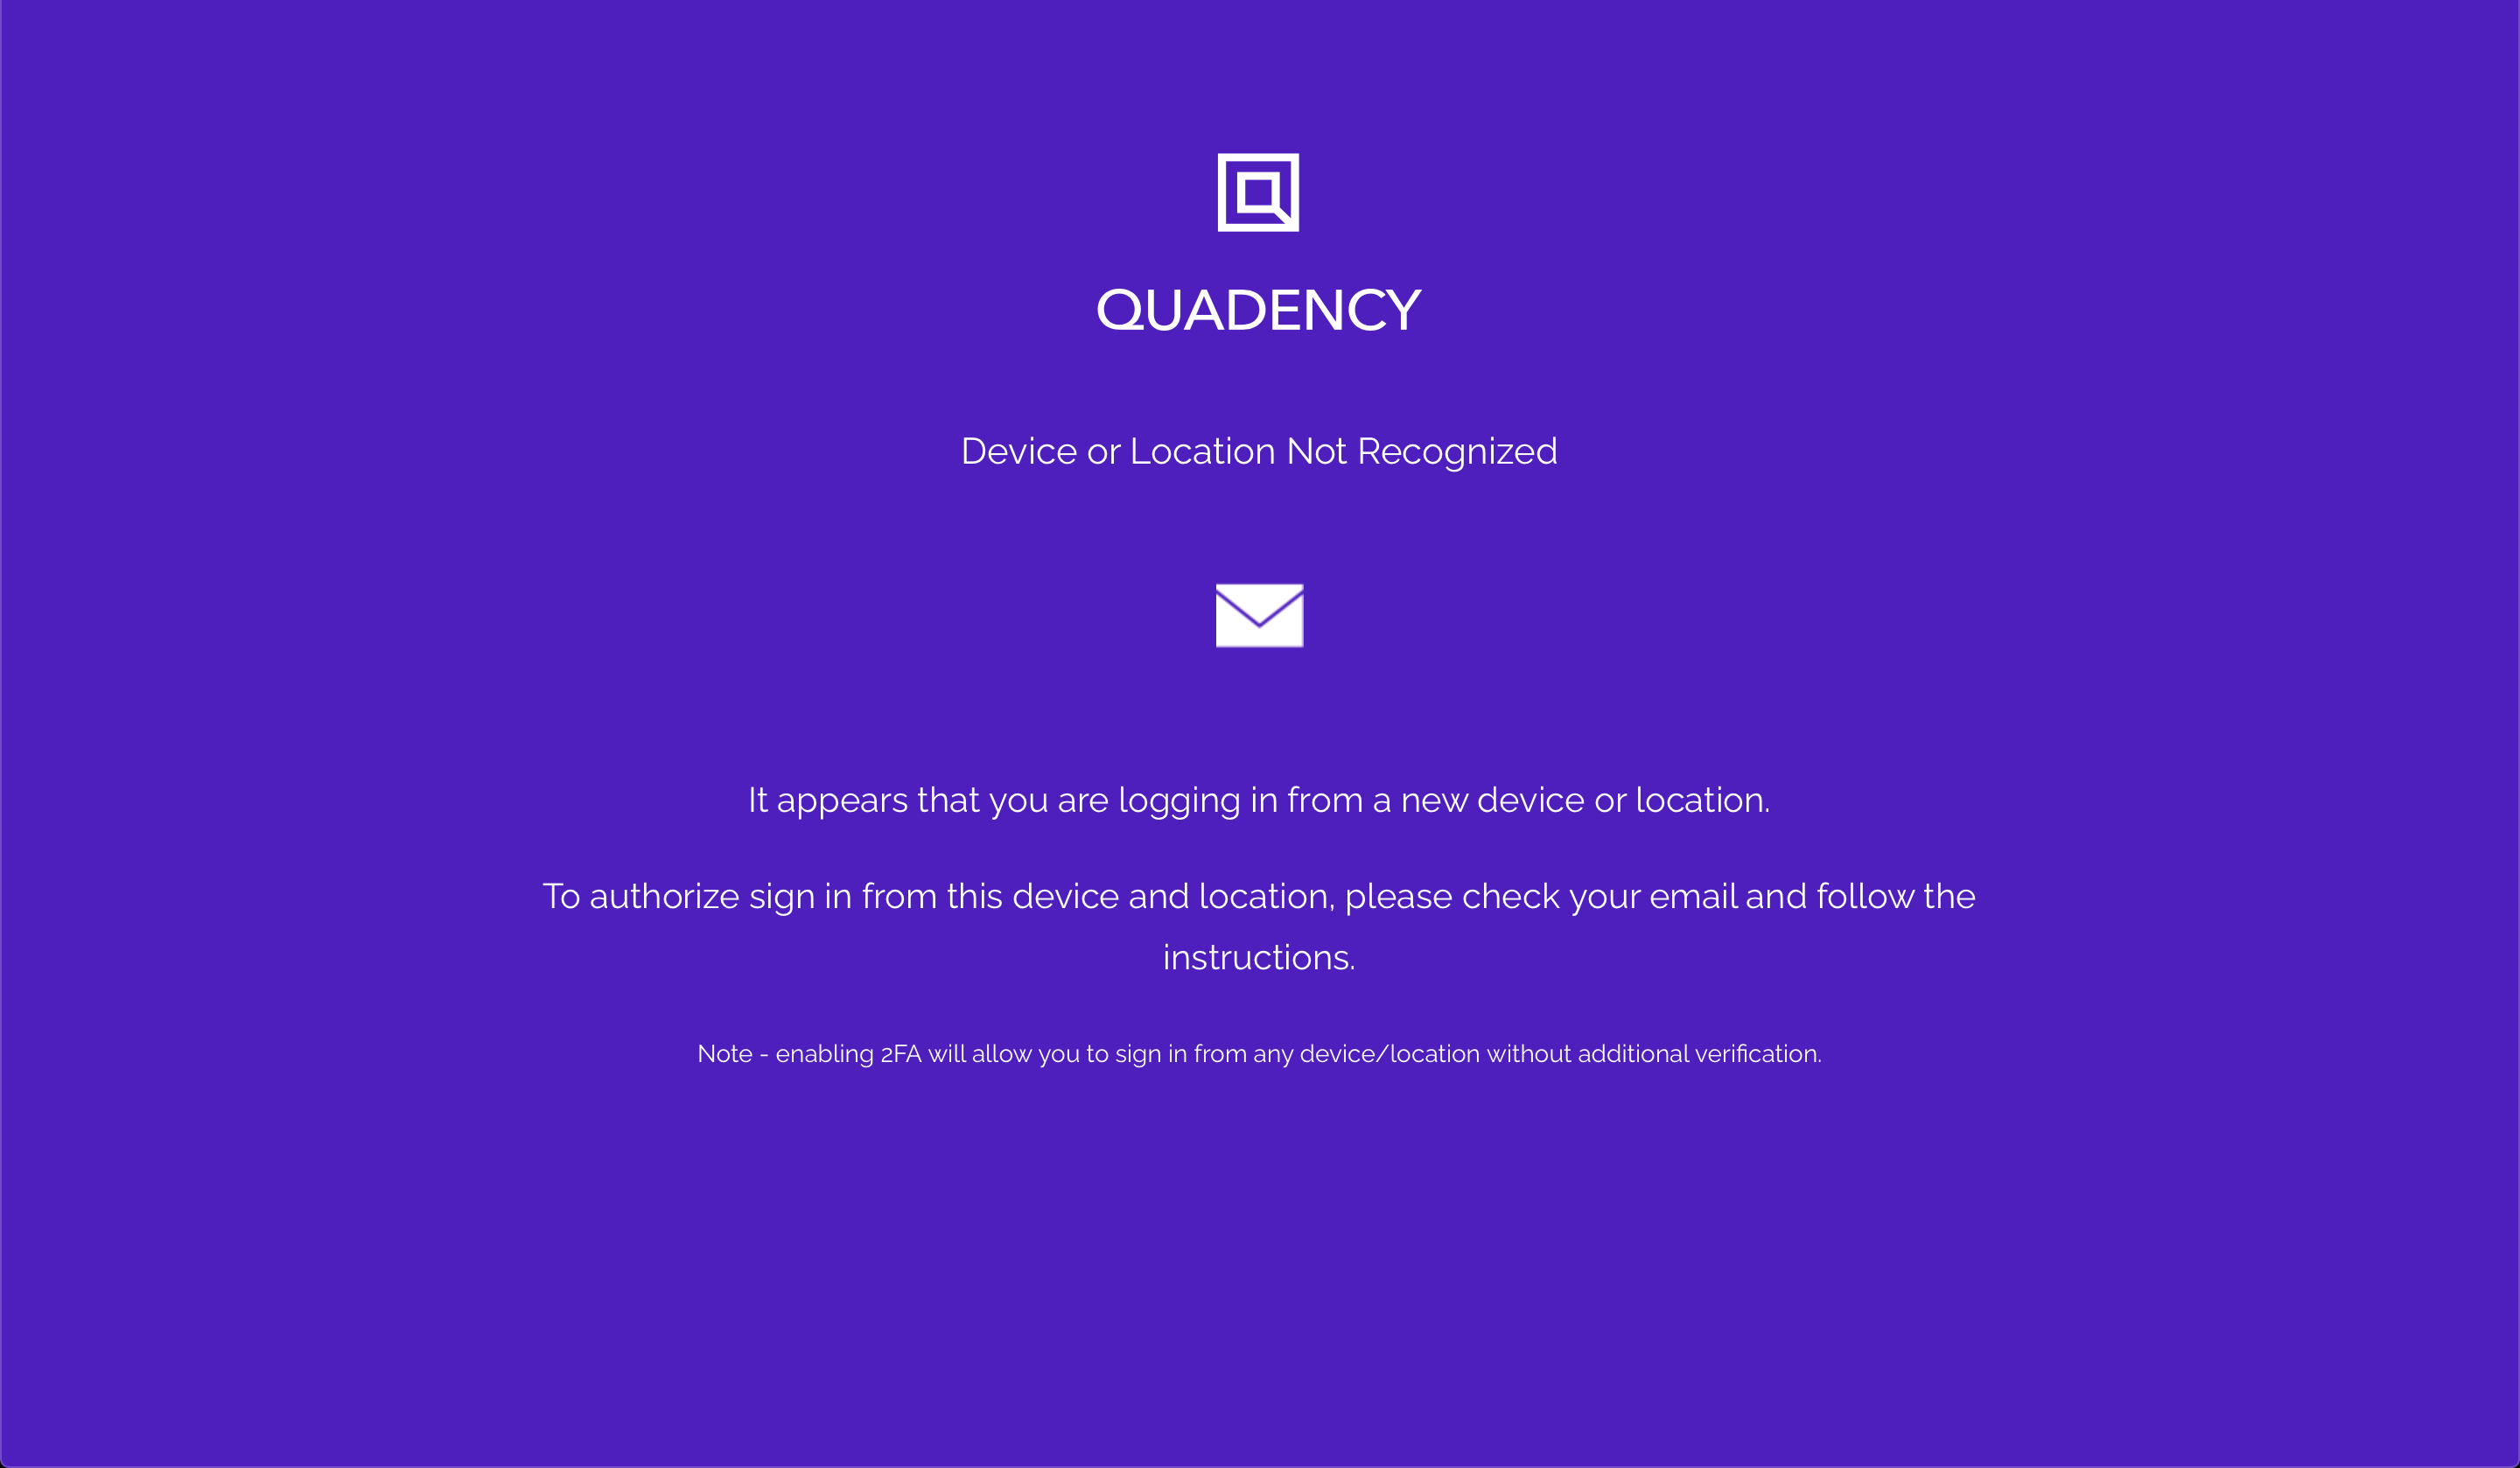 quadency-ip-device-location-not-recognized